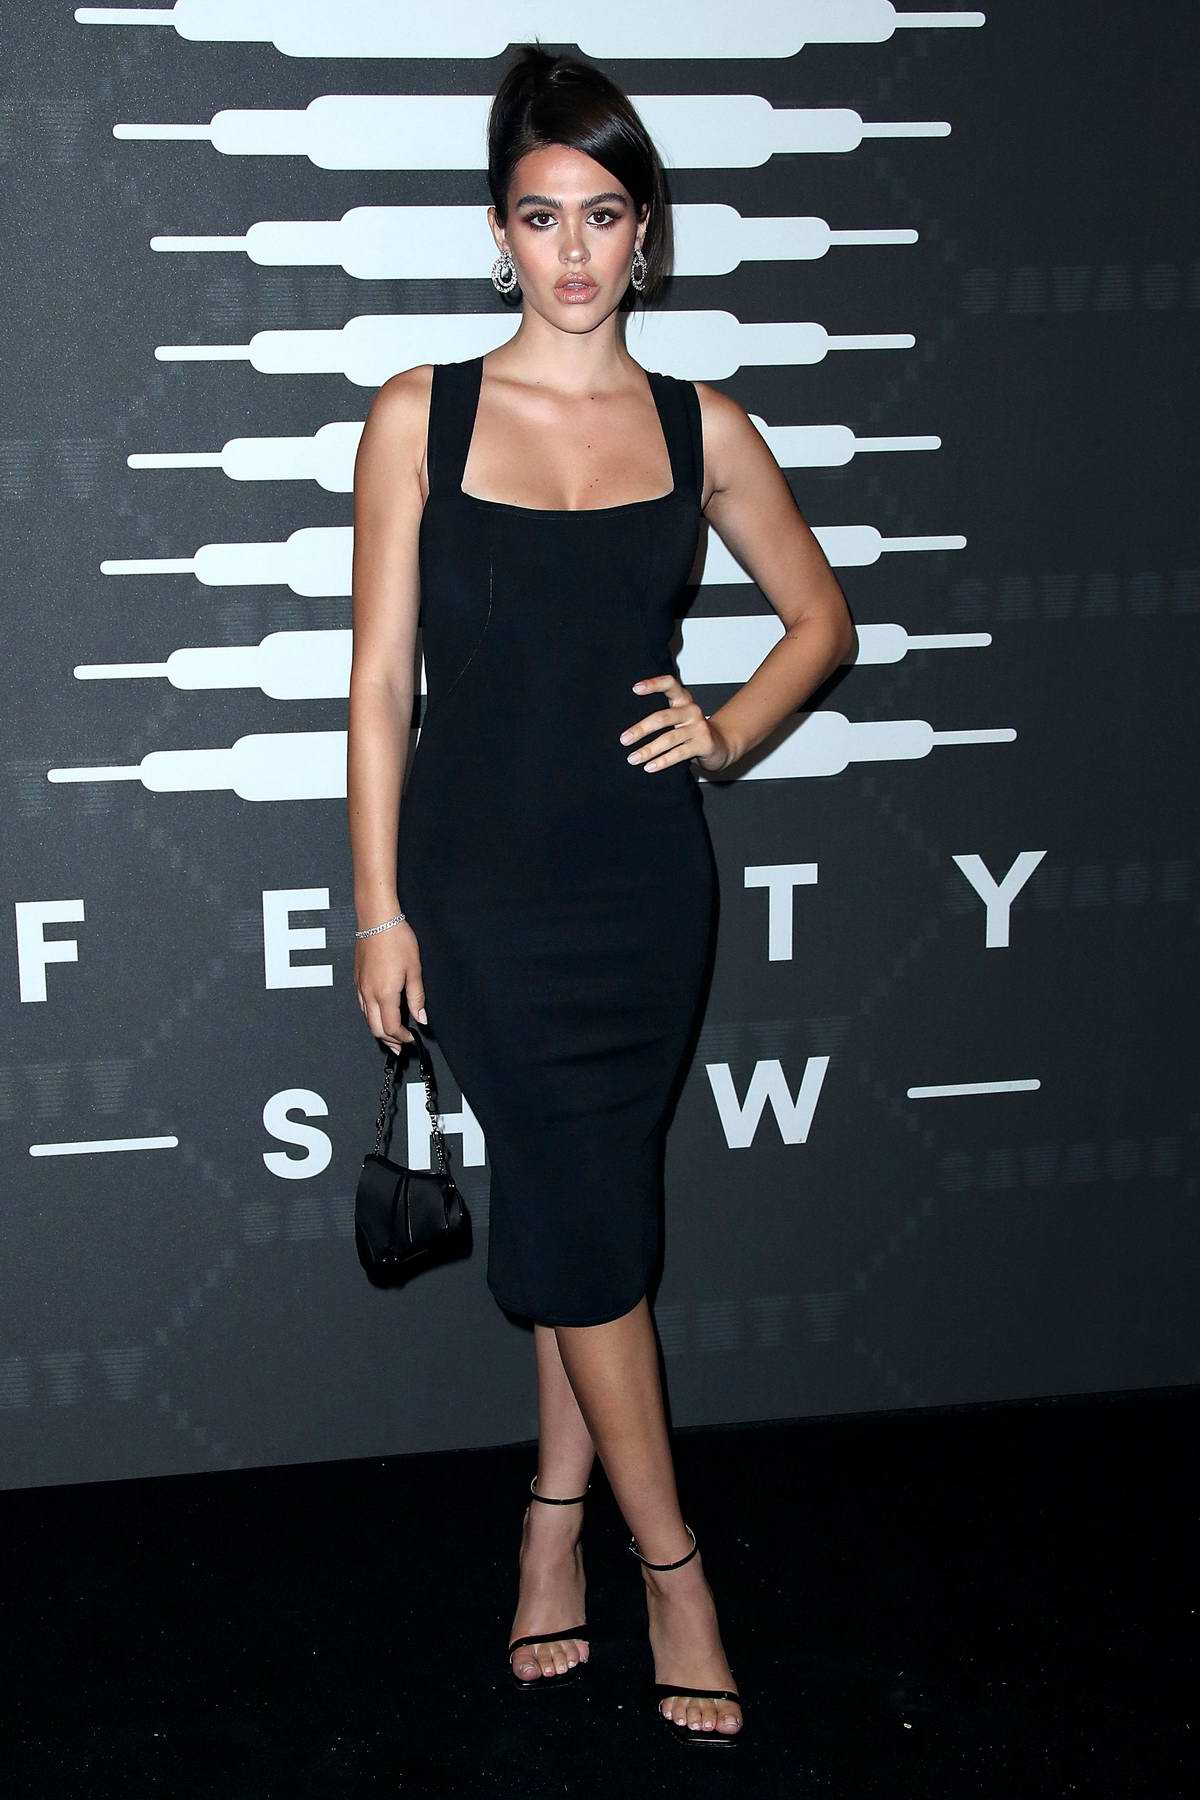 Amelia Hamlin attends Savage X Fenty Show during New York Fashion Week at Barclays Center in Brooklyn, New York City